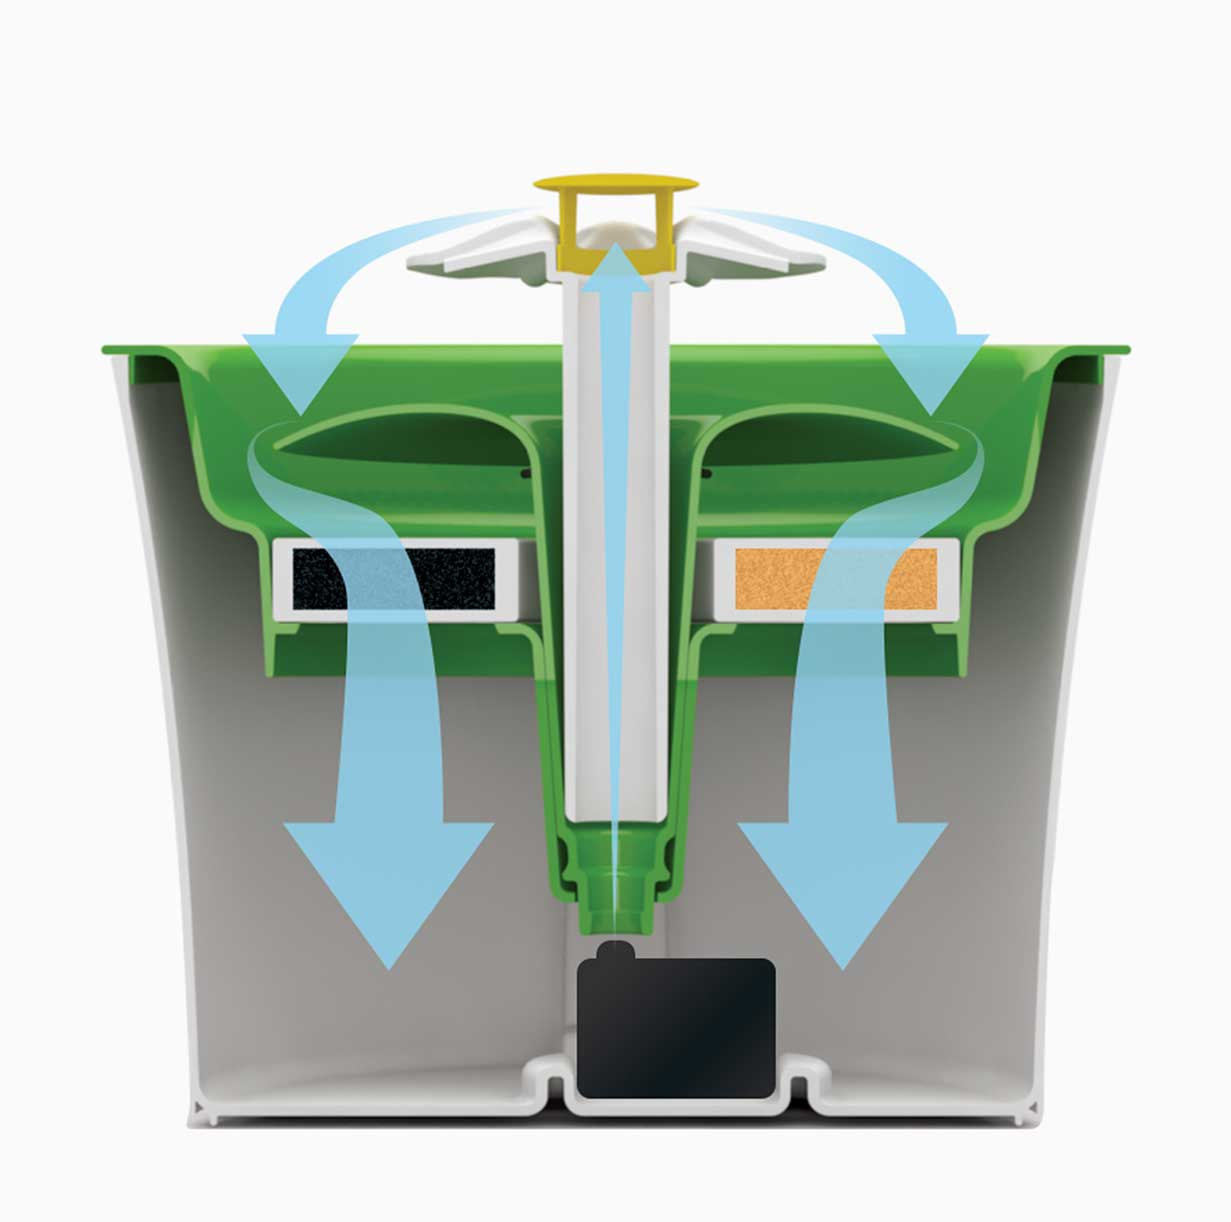 Drawing of the filtration system of the Catit Flower Fountain